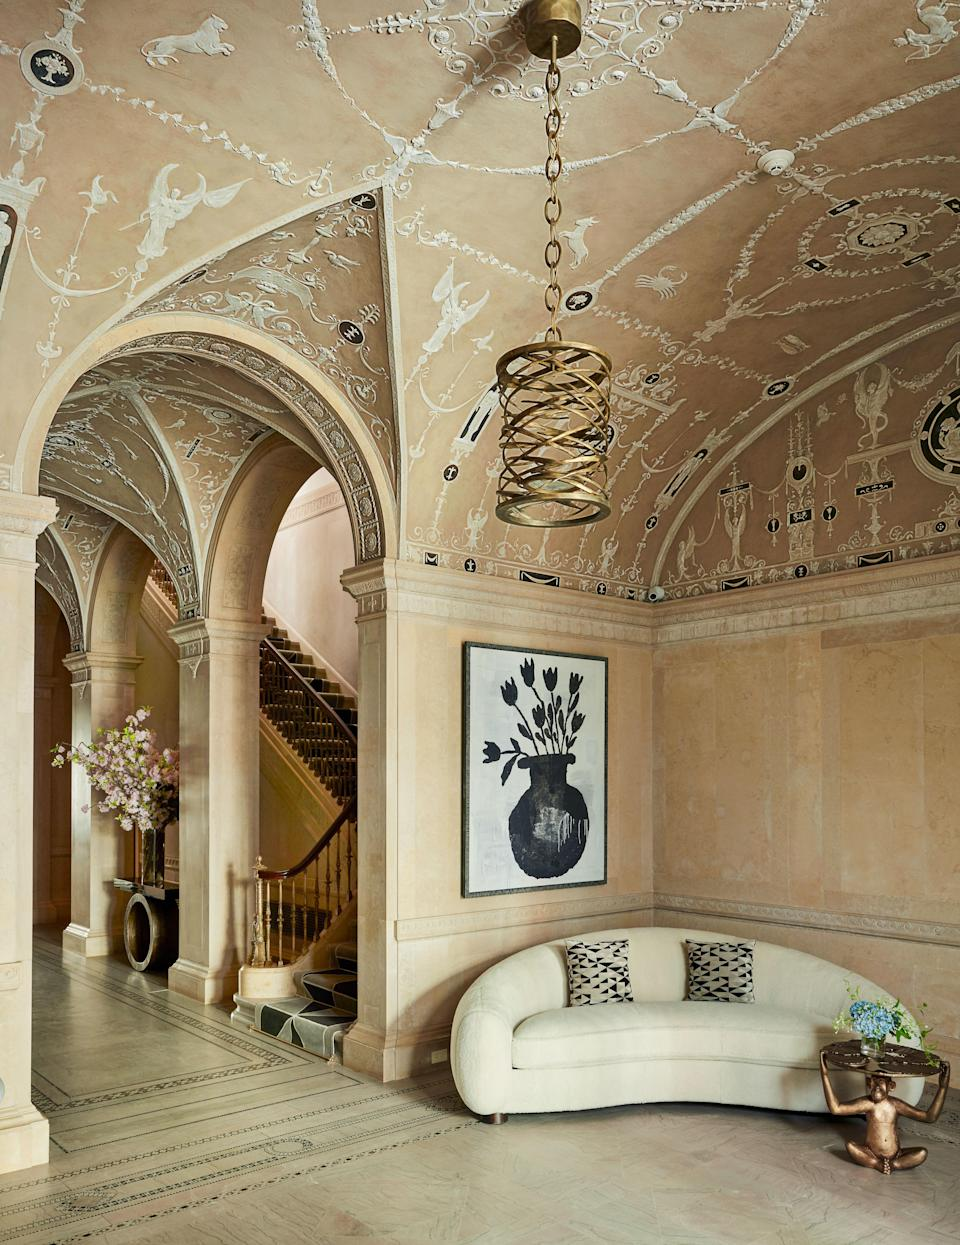 To create a welcoming home for her own family,Crown Princess Marie-Chantalof Greece calls on decorating legendFrançois Catrouxto breathe modern life into the grand 1913 Manhattan town house that her parents once called home.